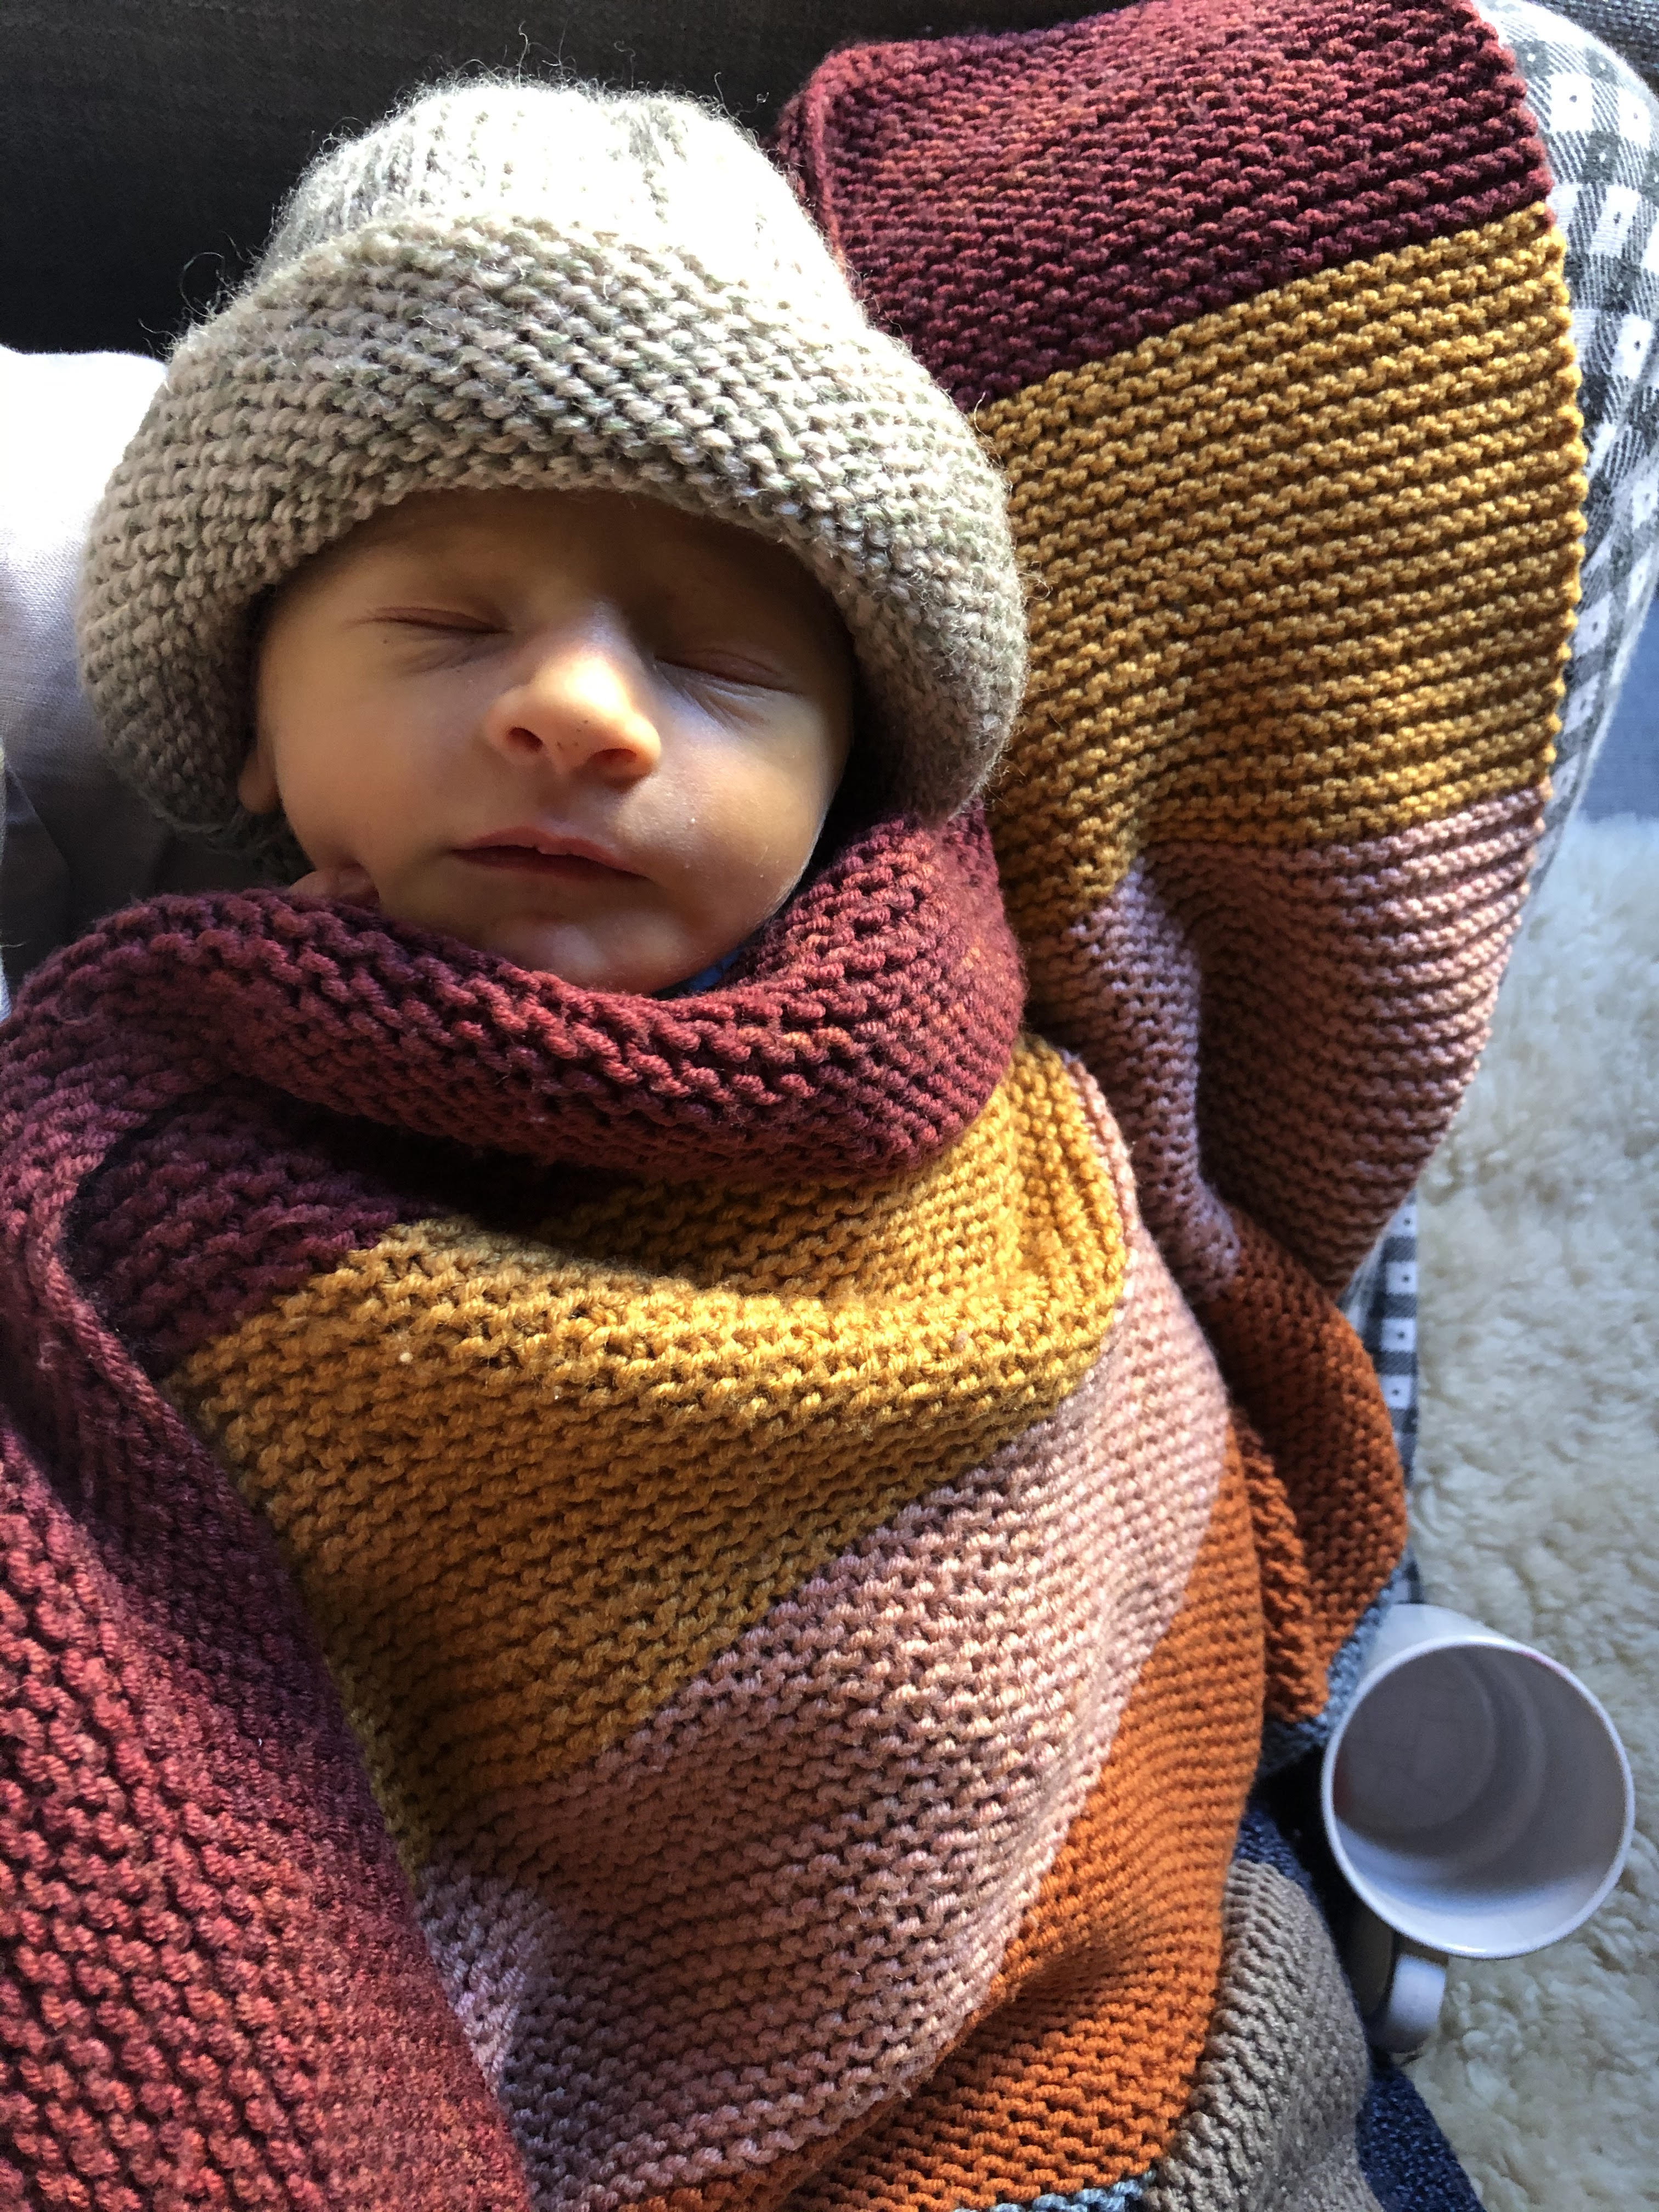 Stanley, a few days old, cosy in woollens